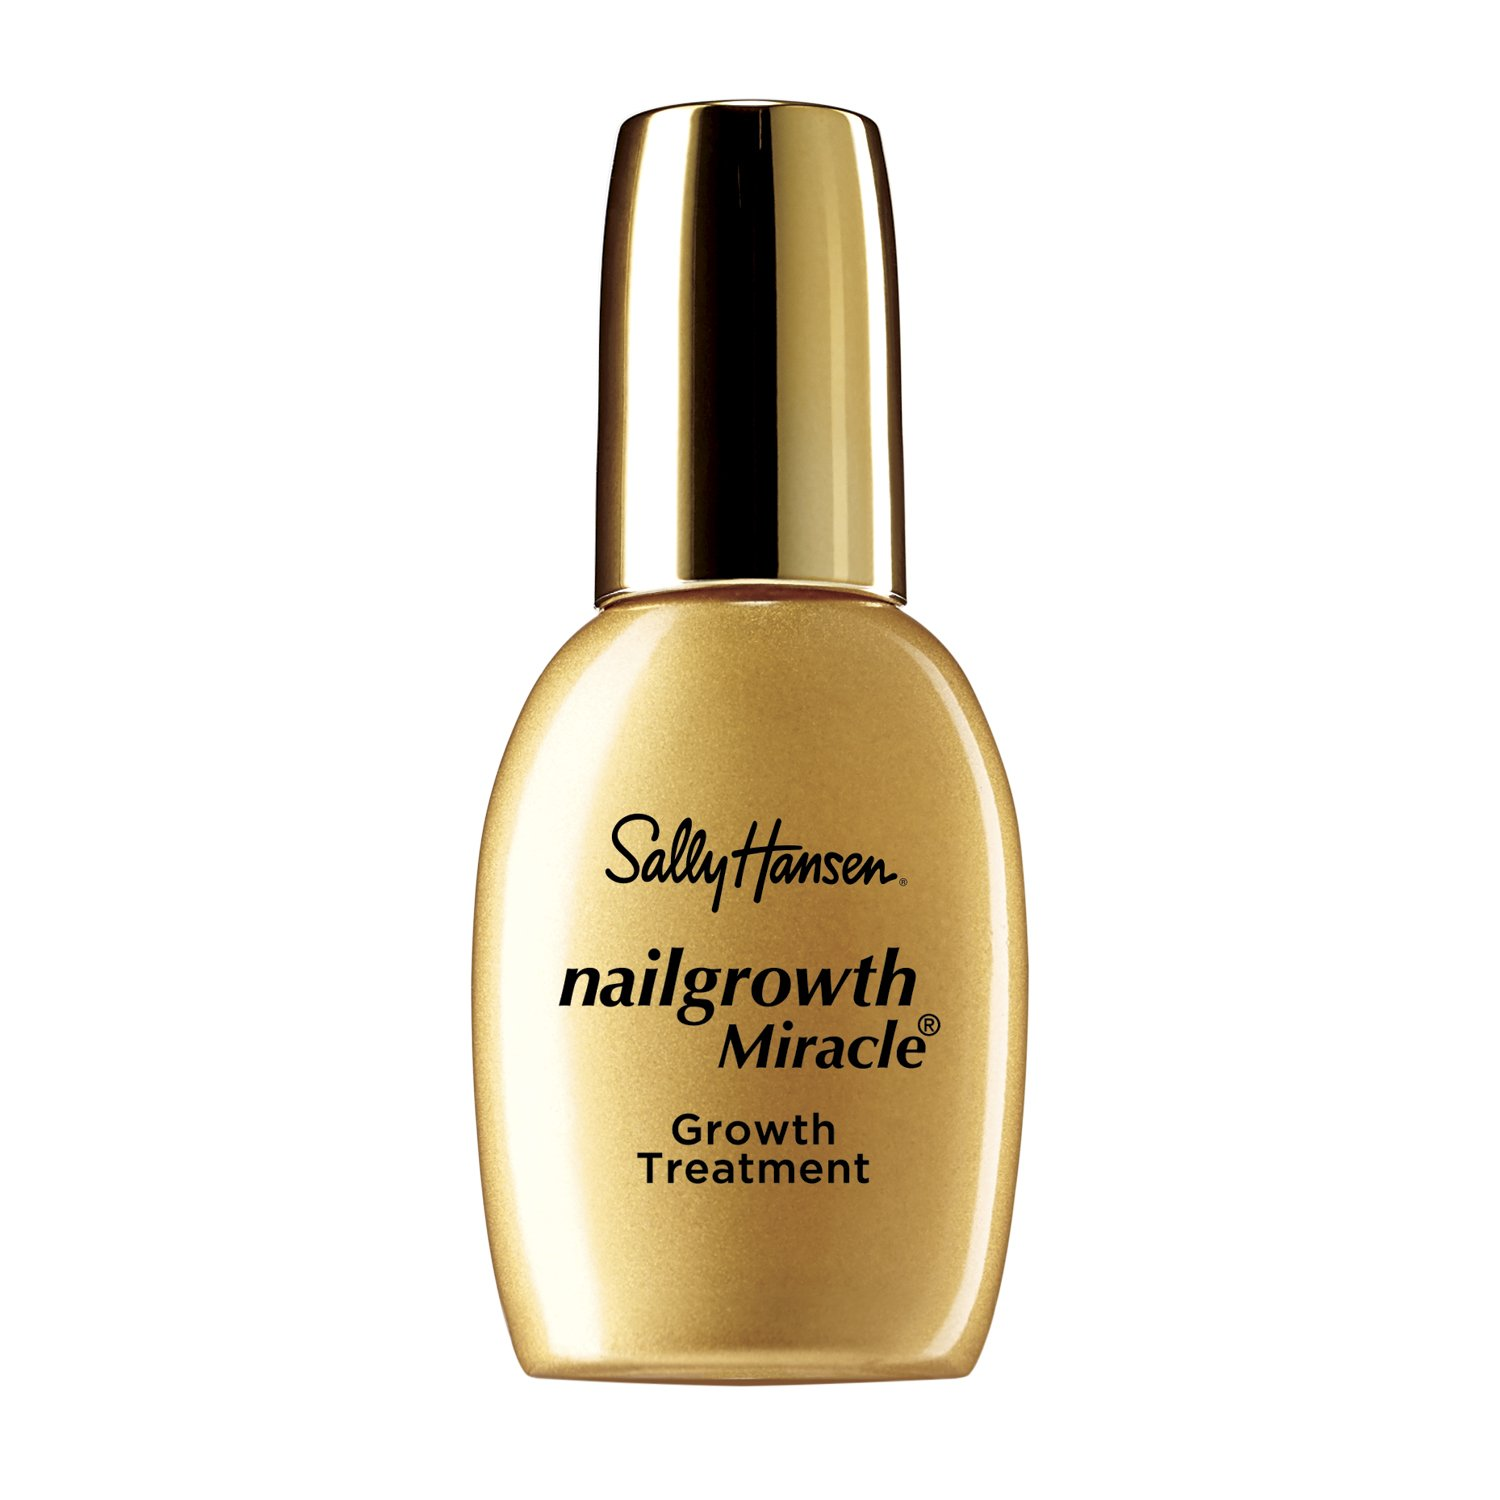 Sally Hansen Nailgrowth Miracle, Serum 0.45 oz Clear 30003427000